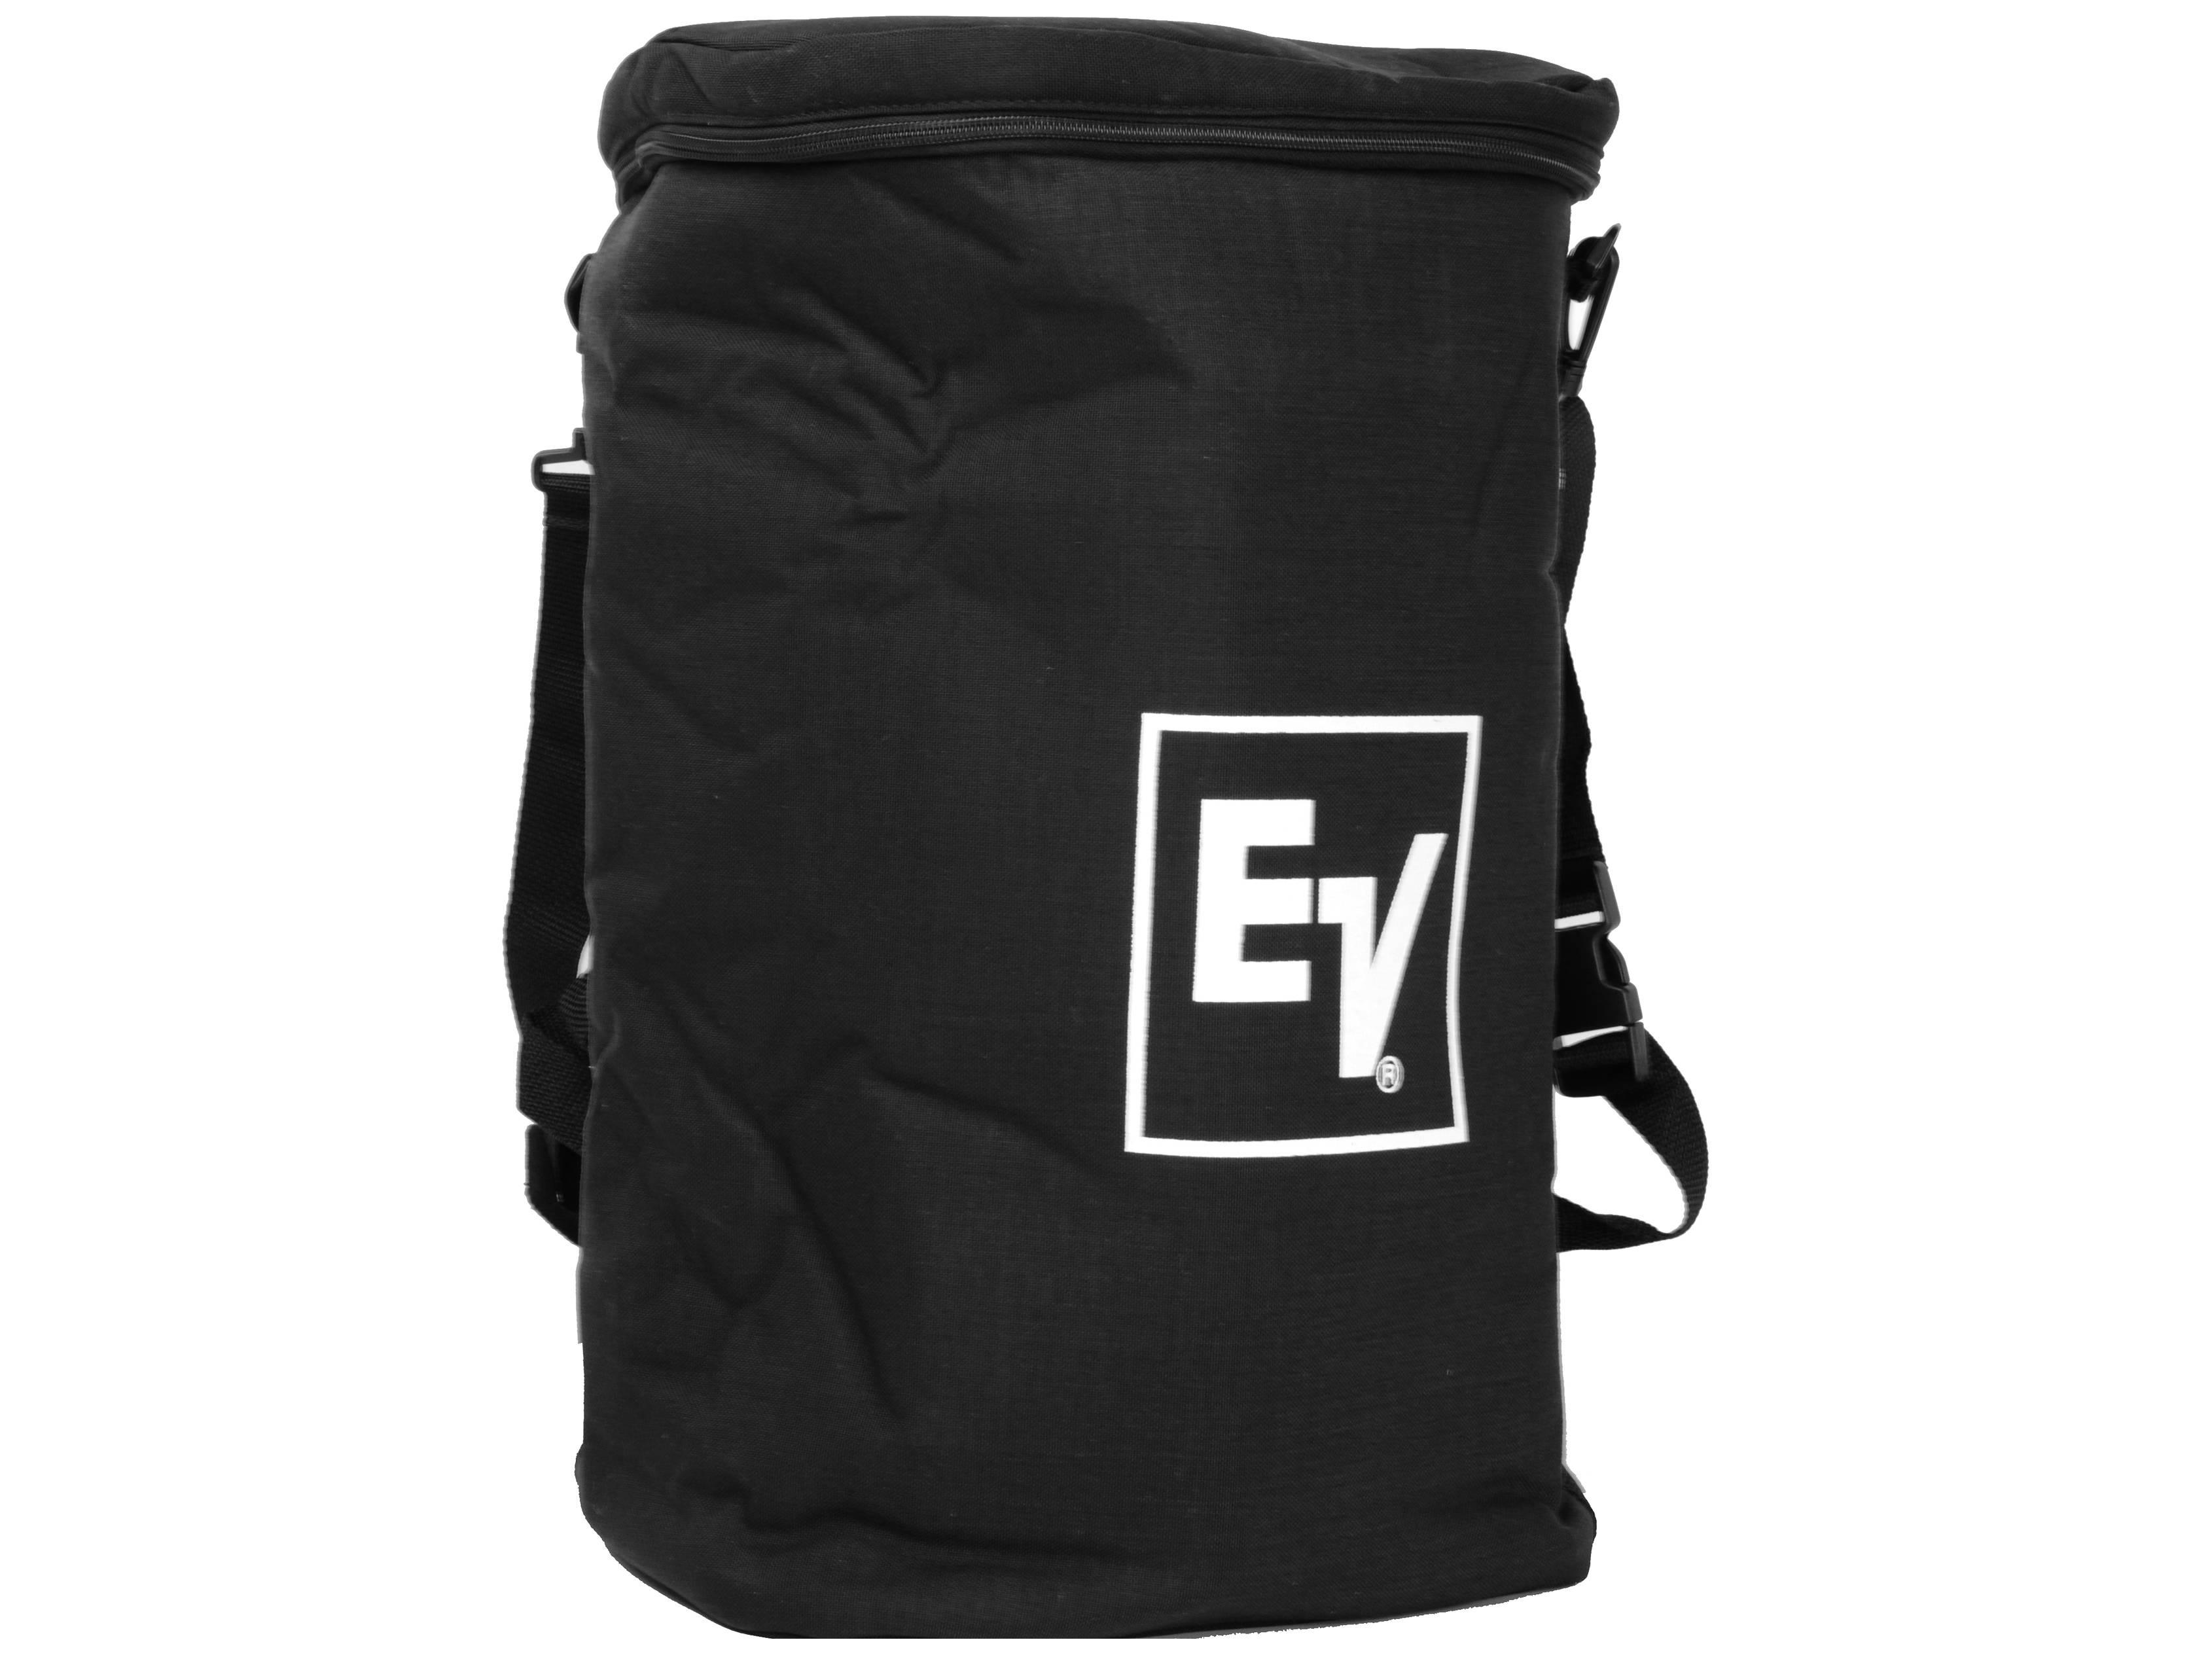 CB1 ZX1 Carrying Bag by Electro-Voice